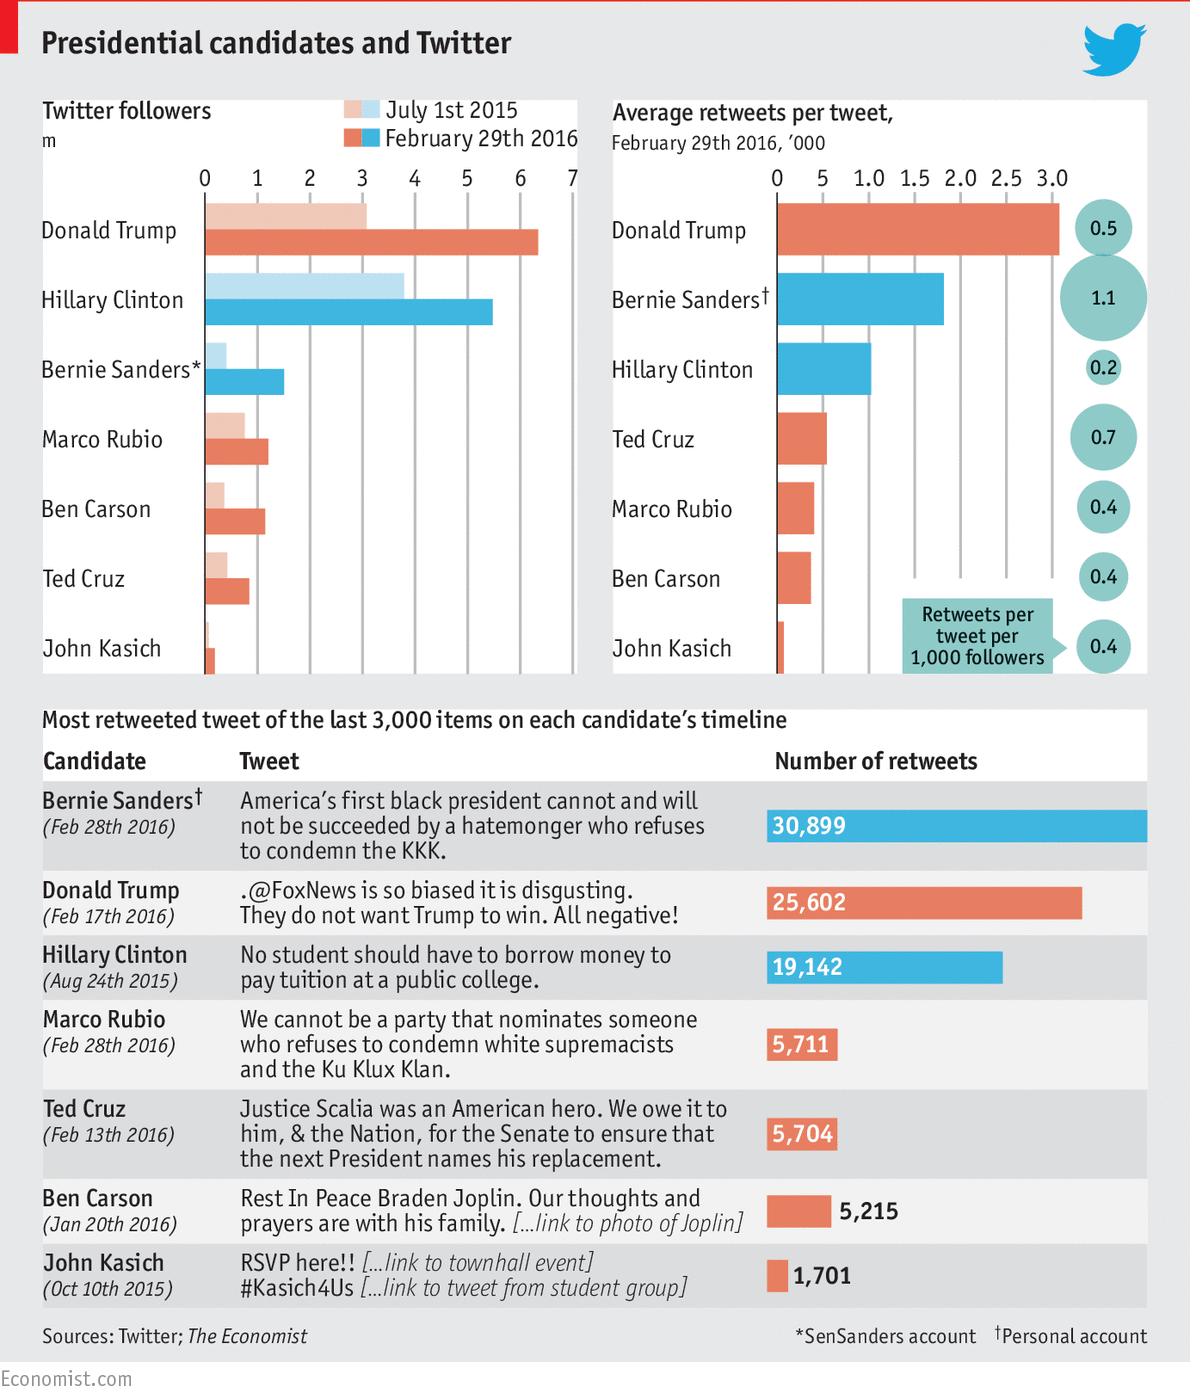 American presidential candidates and social media - Daily chart